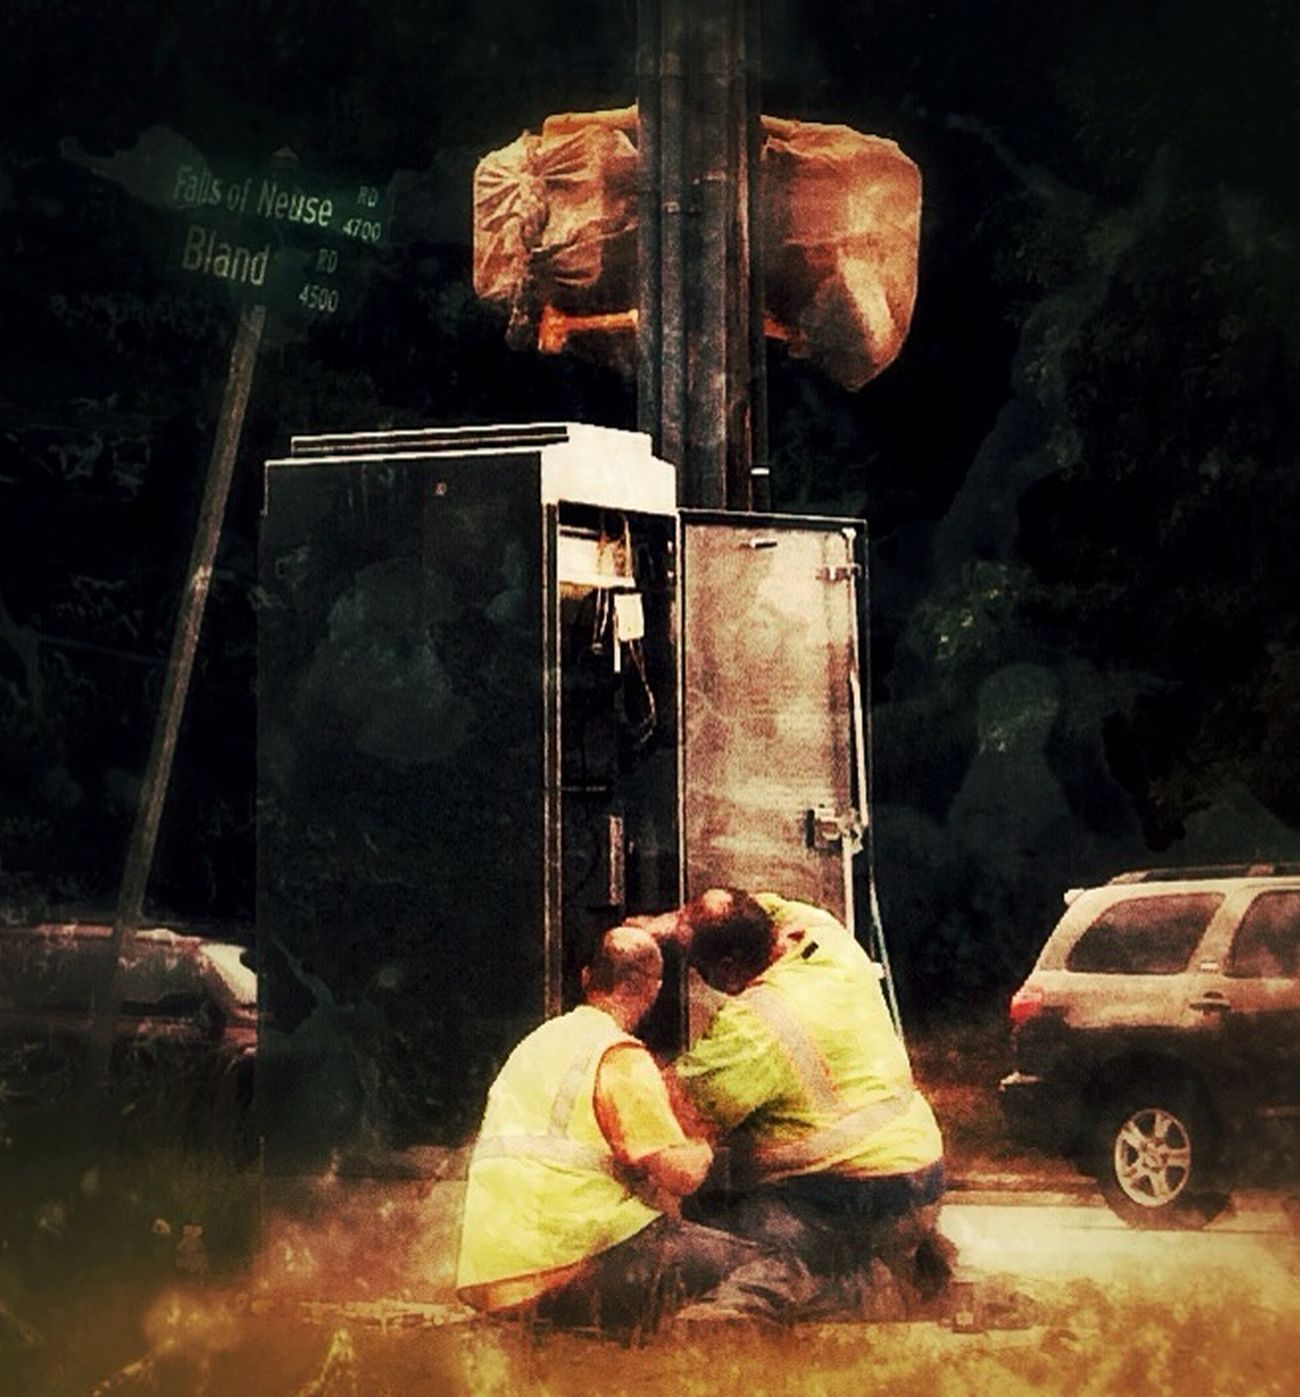 AMPt_community got signals crossed The Street Photographer - 2014 EyeEm Awards We Are Juxt IPhone Photography